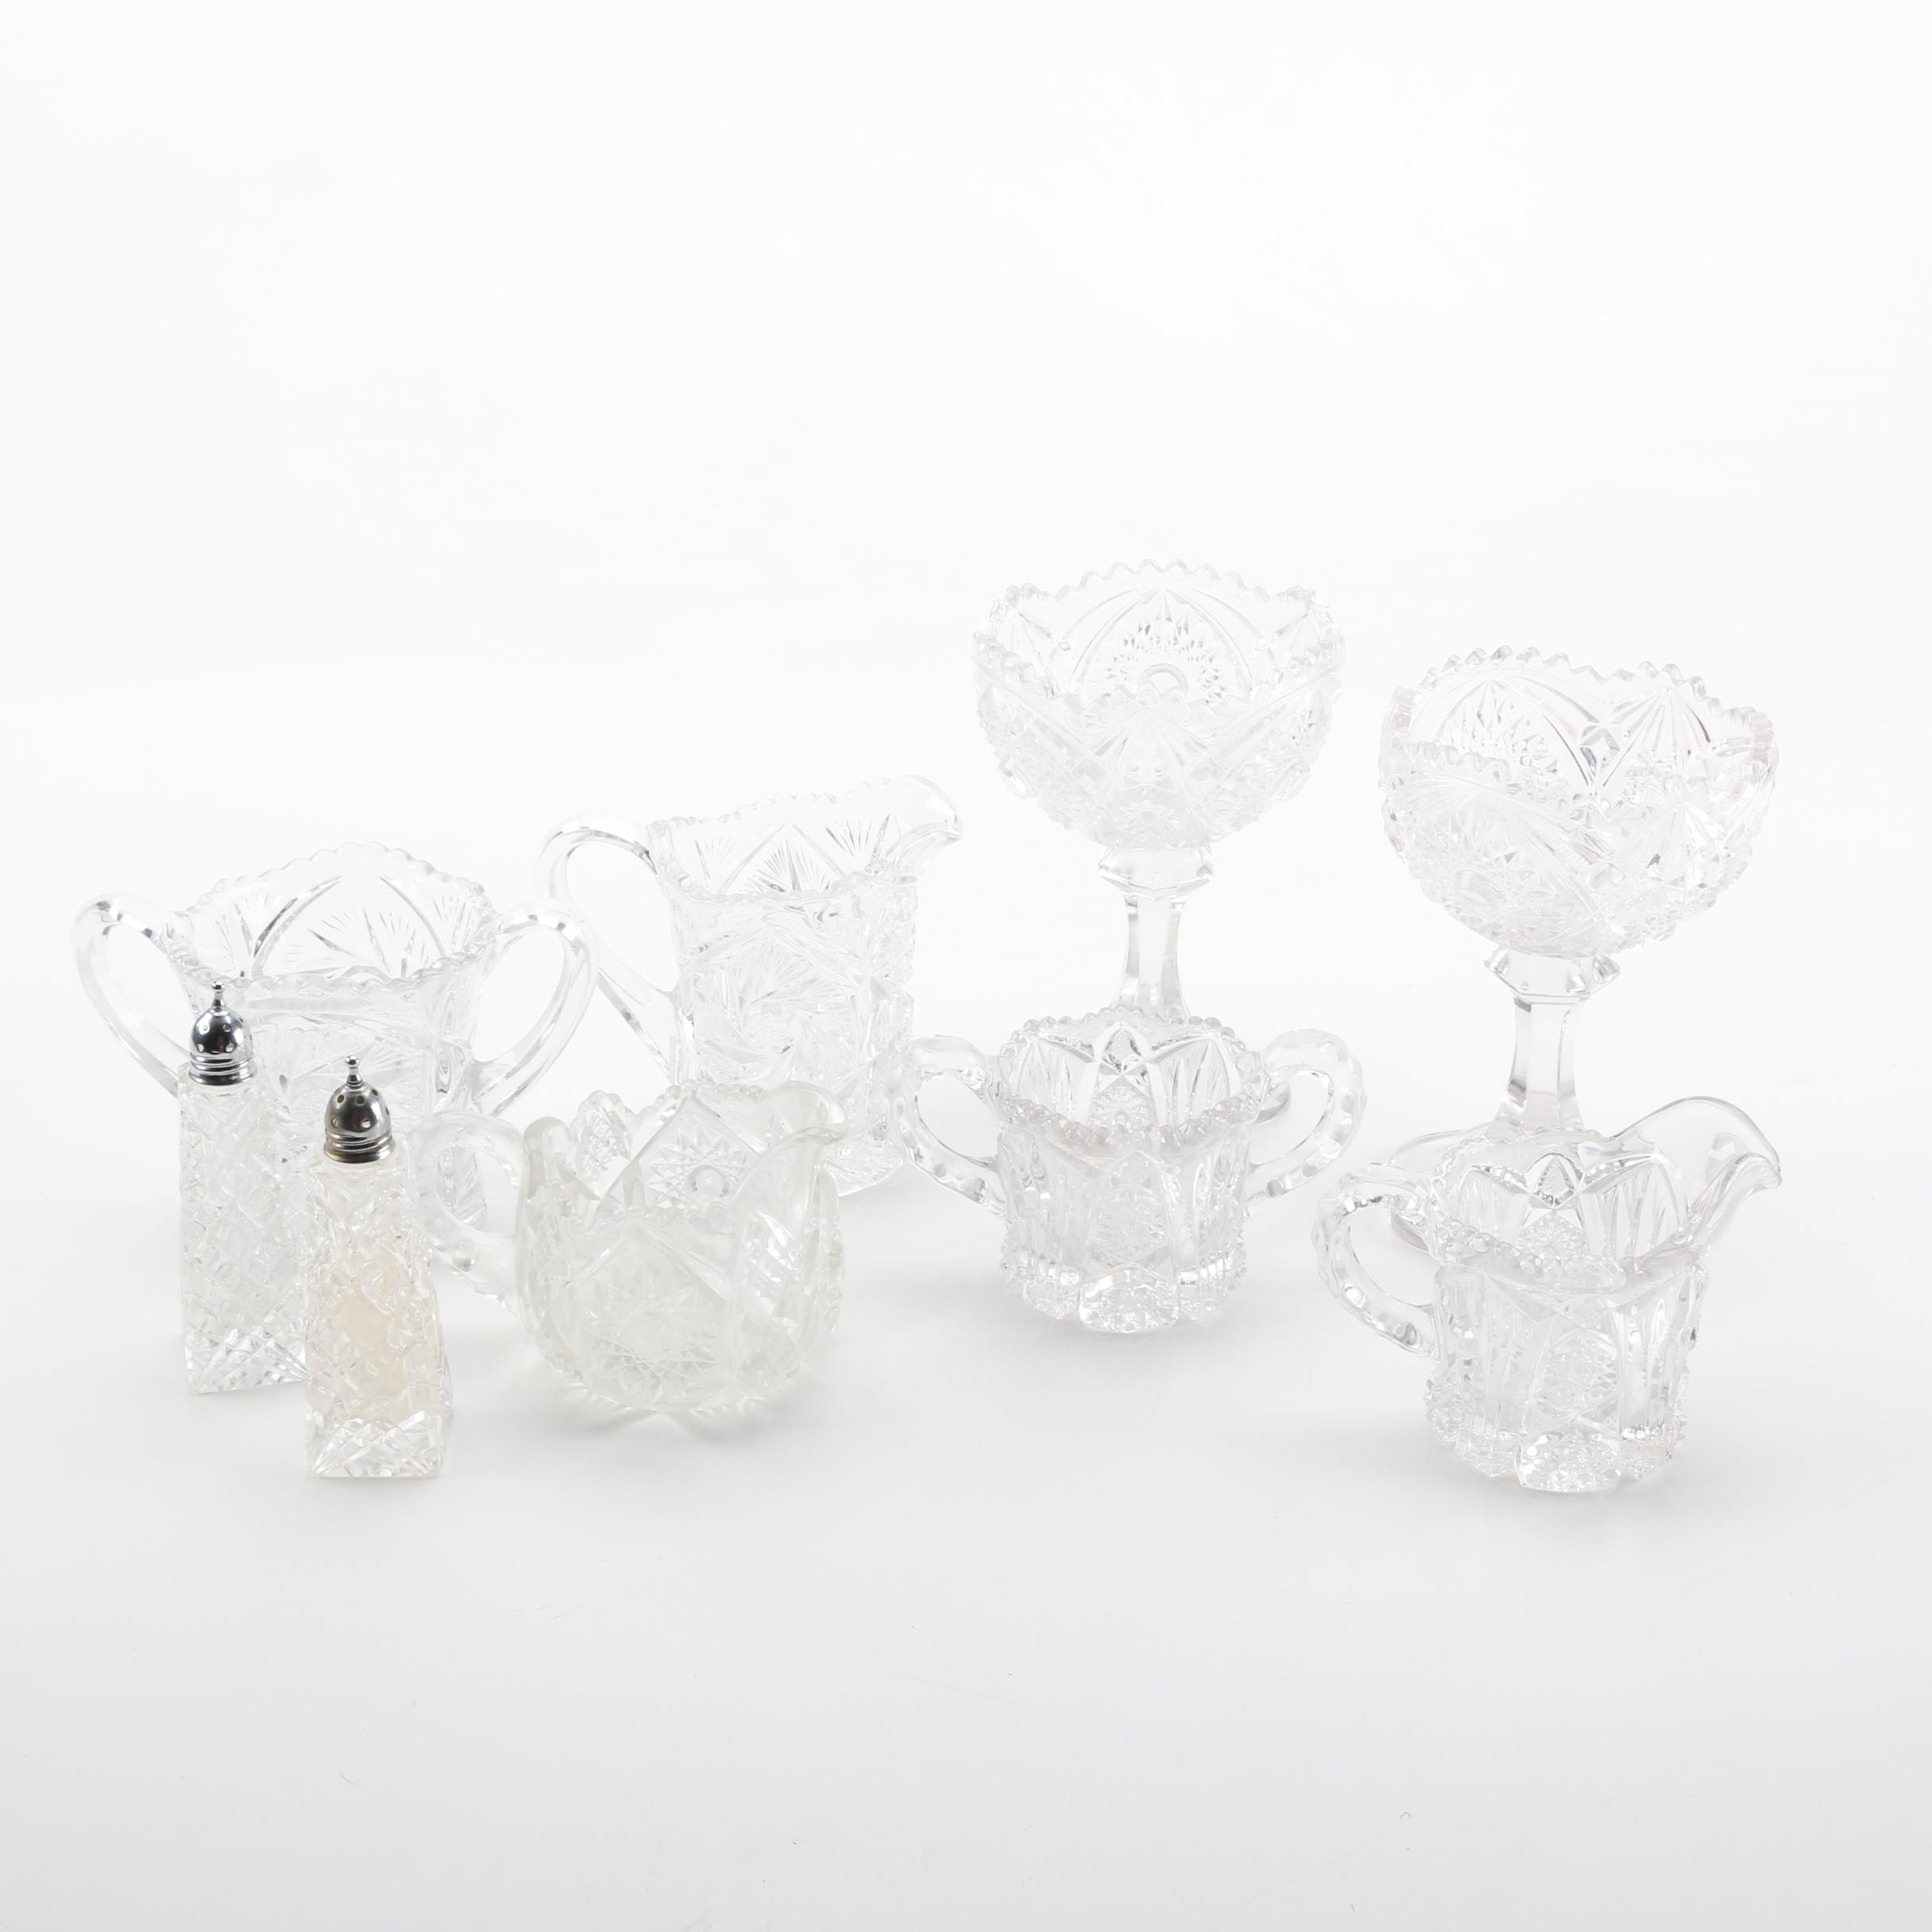 Pressed Glass and Crystal Tableware